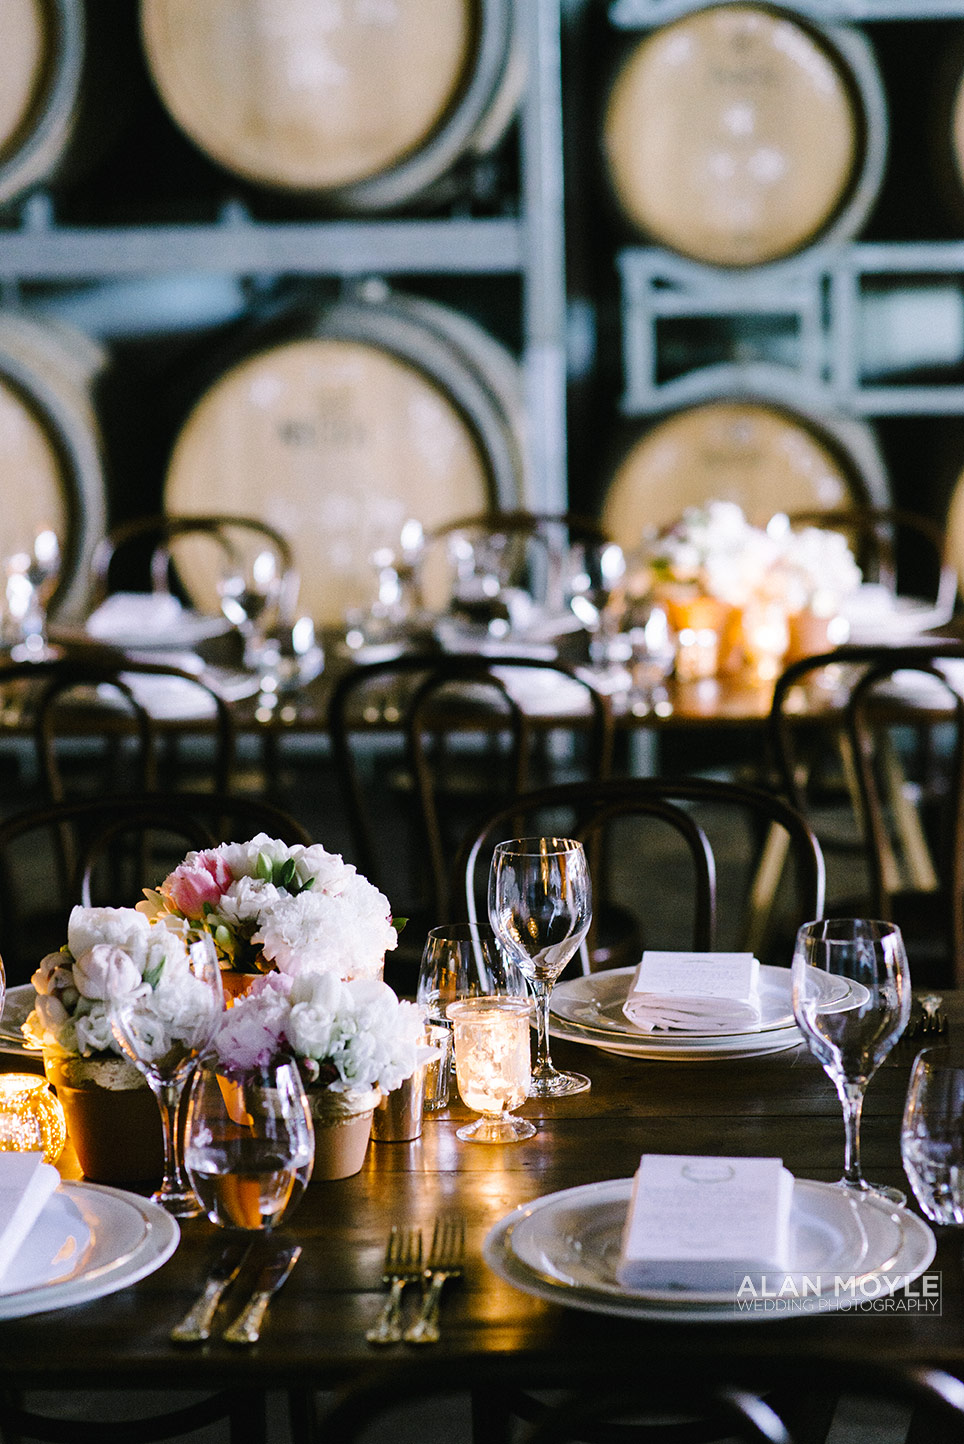 1405austin-288weddings_of_desire_melbourne_styling_event_geelong_alan_moyle_vineyard_winery_caligraphy_laura_sprout_hire_bayside.jpg